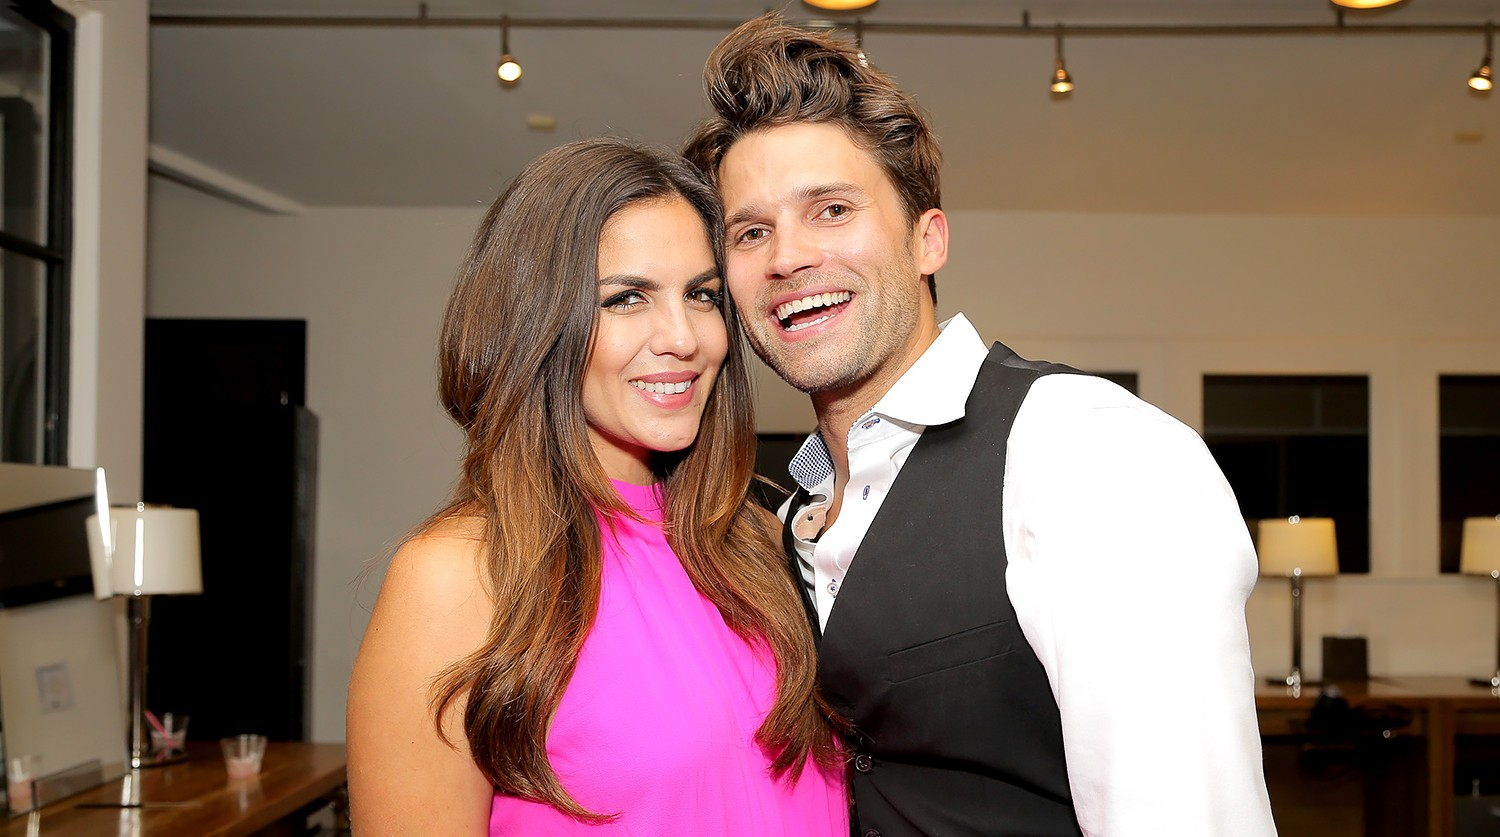 Vanderpump Rules' Katie Maloney and Tom Schwartz